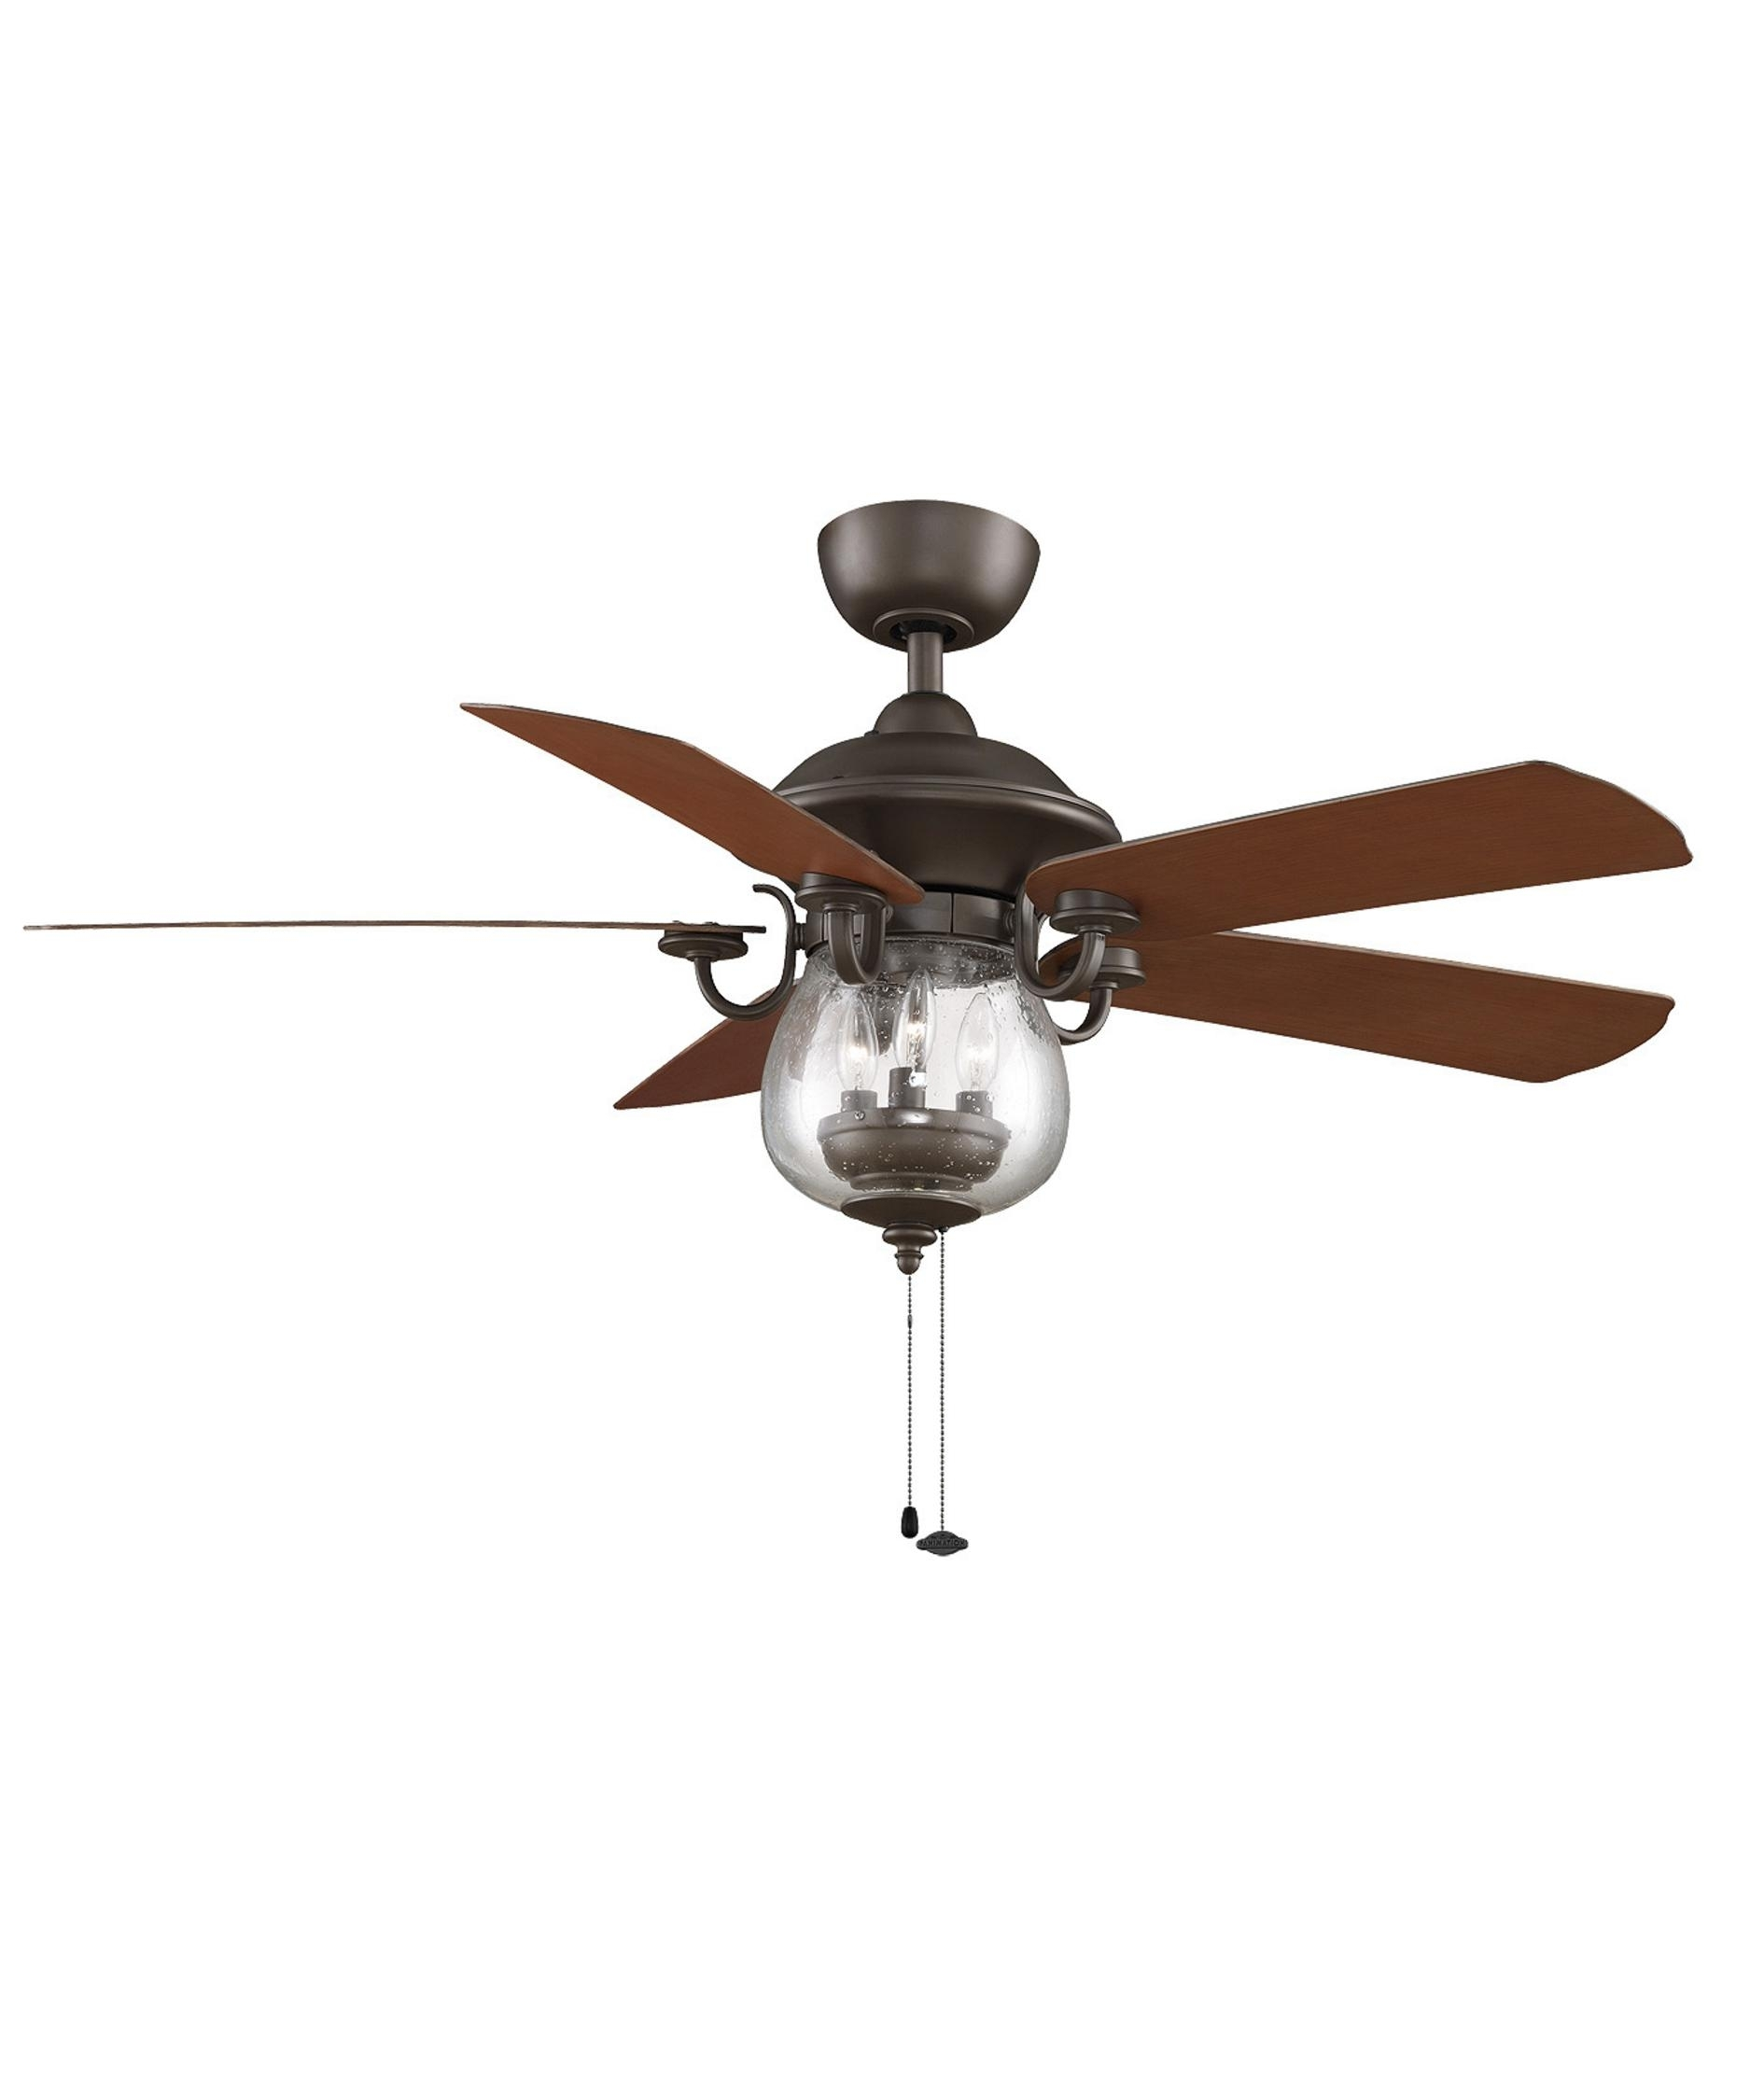 Fanimation Fp7954 Crestford 52 Inch 5 Blade Ceiling Fan | Capitol With Regard To Outdoor Ceiling Fans With Lights (#5 of 15)